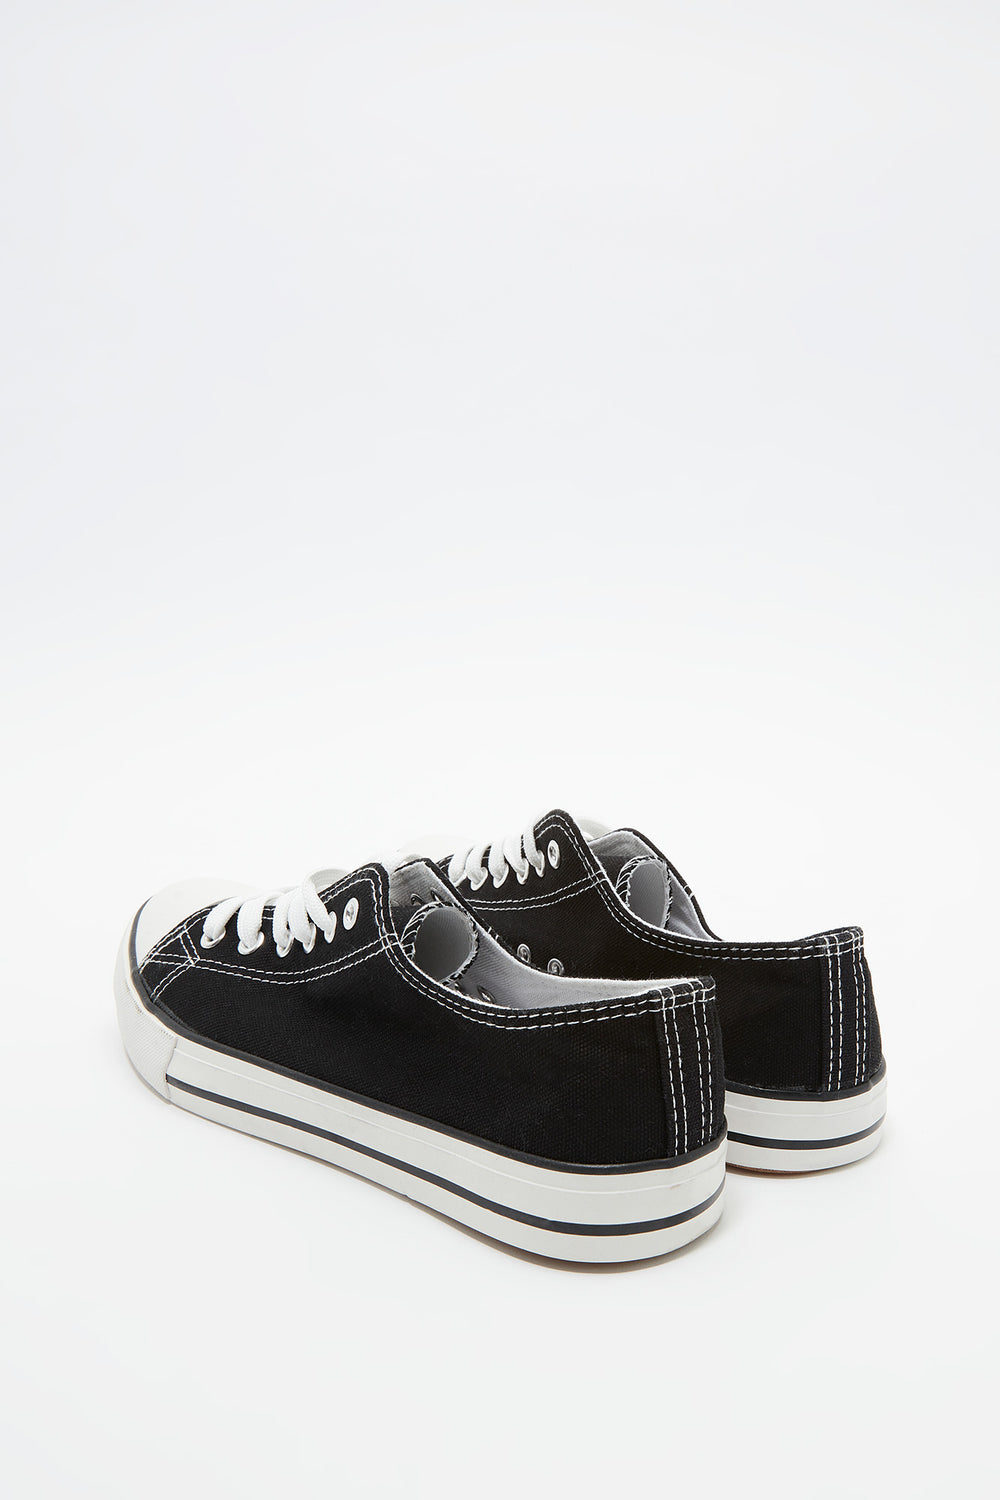 Basic Low Top Lace-Up Sneaker Black with White